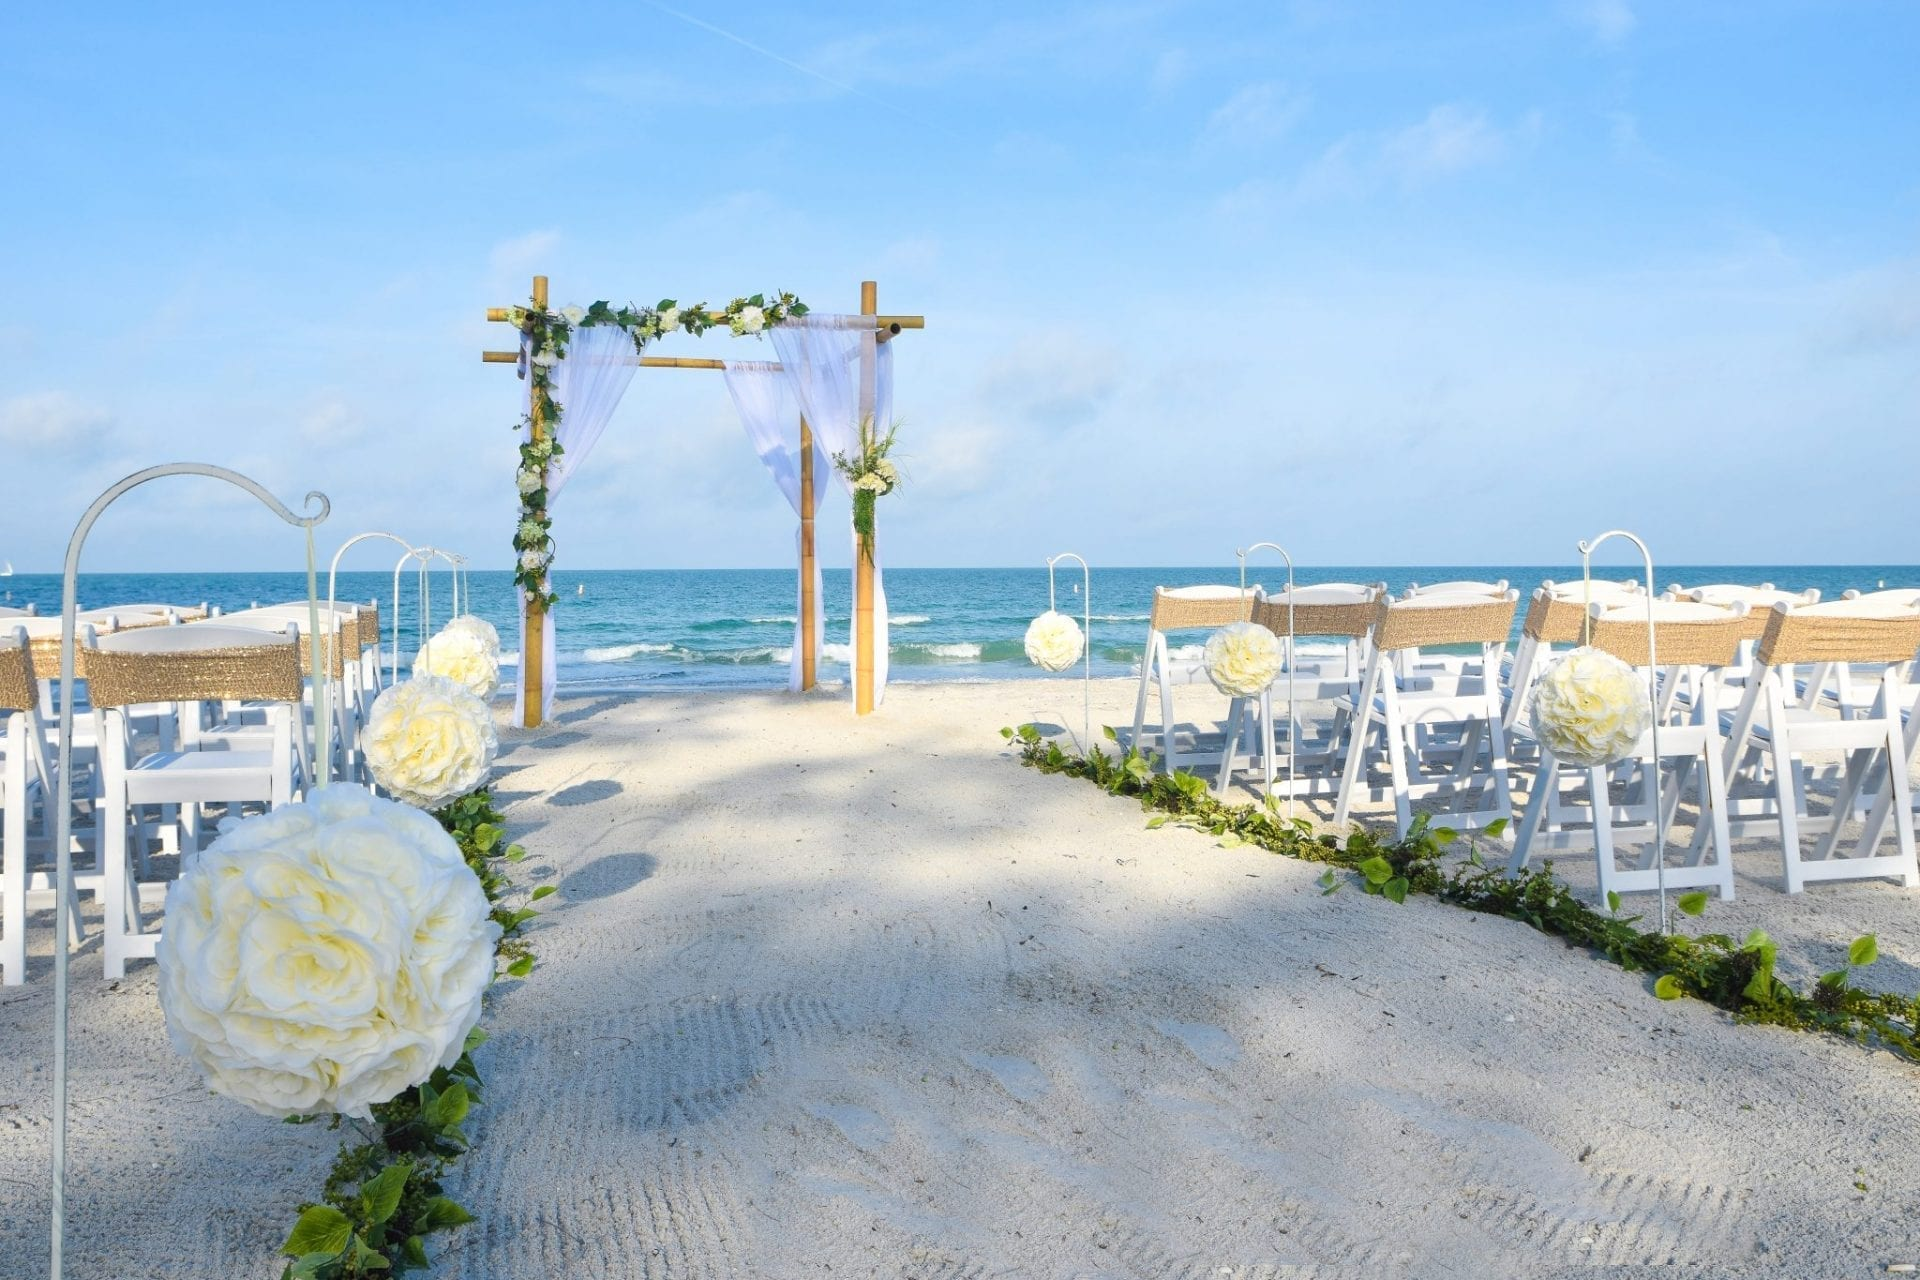 Floral Gulf beach wedding arch and chairs